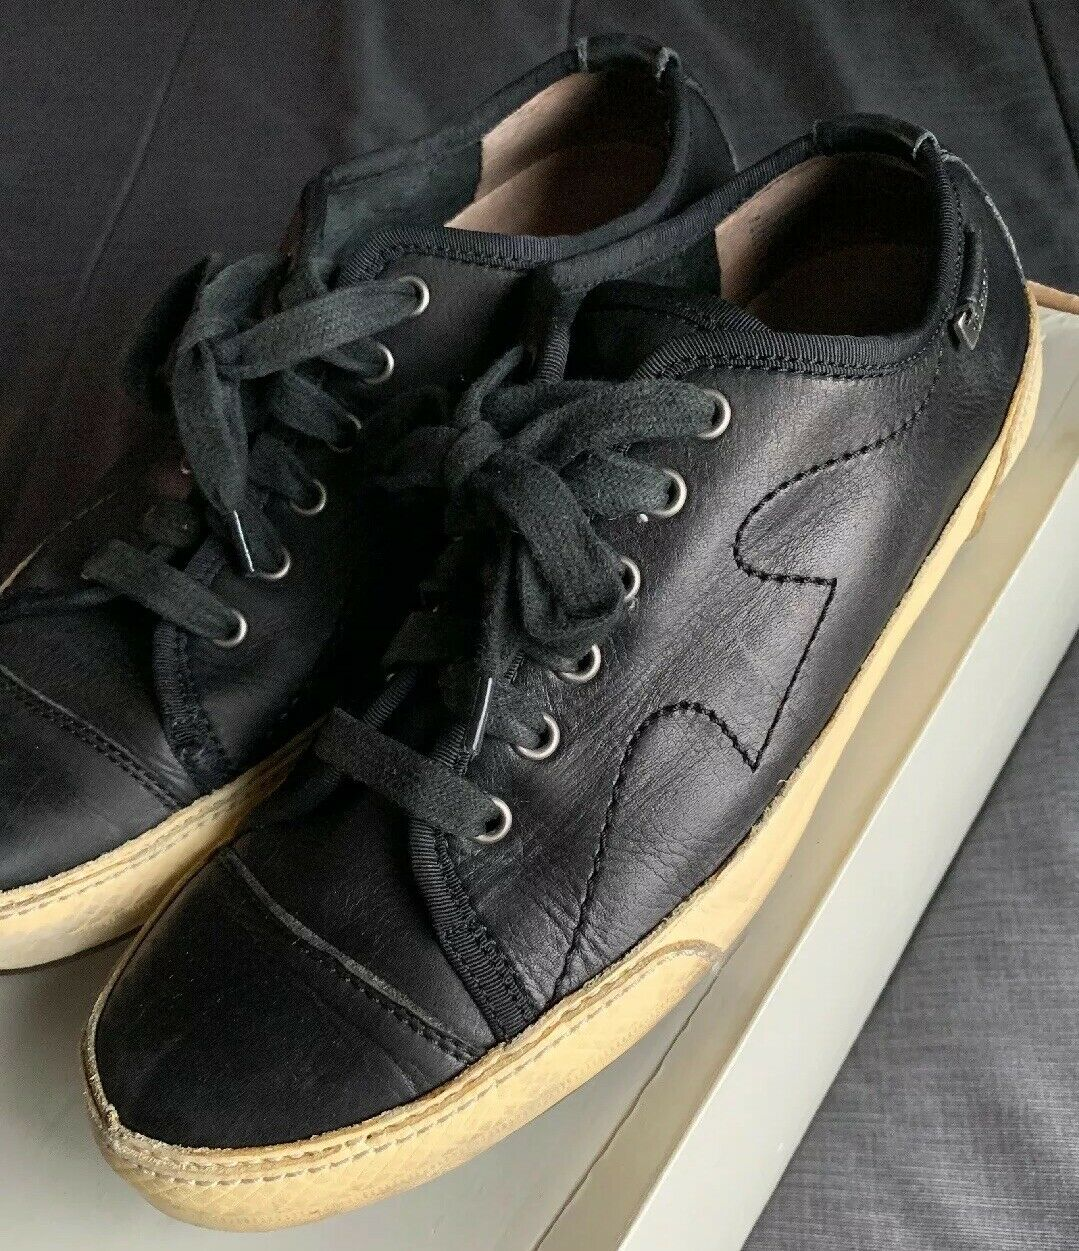 Frye Cooper Low Lace Leather 81113 Black F0001 J08 shoes Sneakers Size 11 M